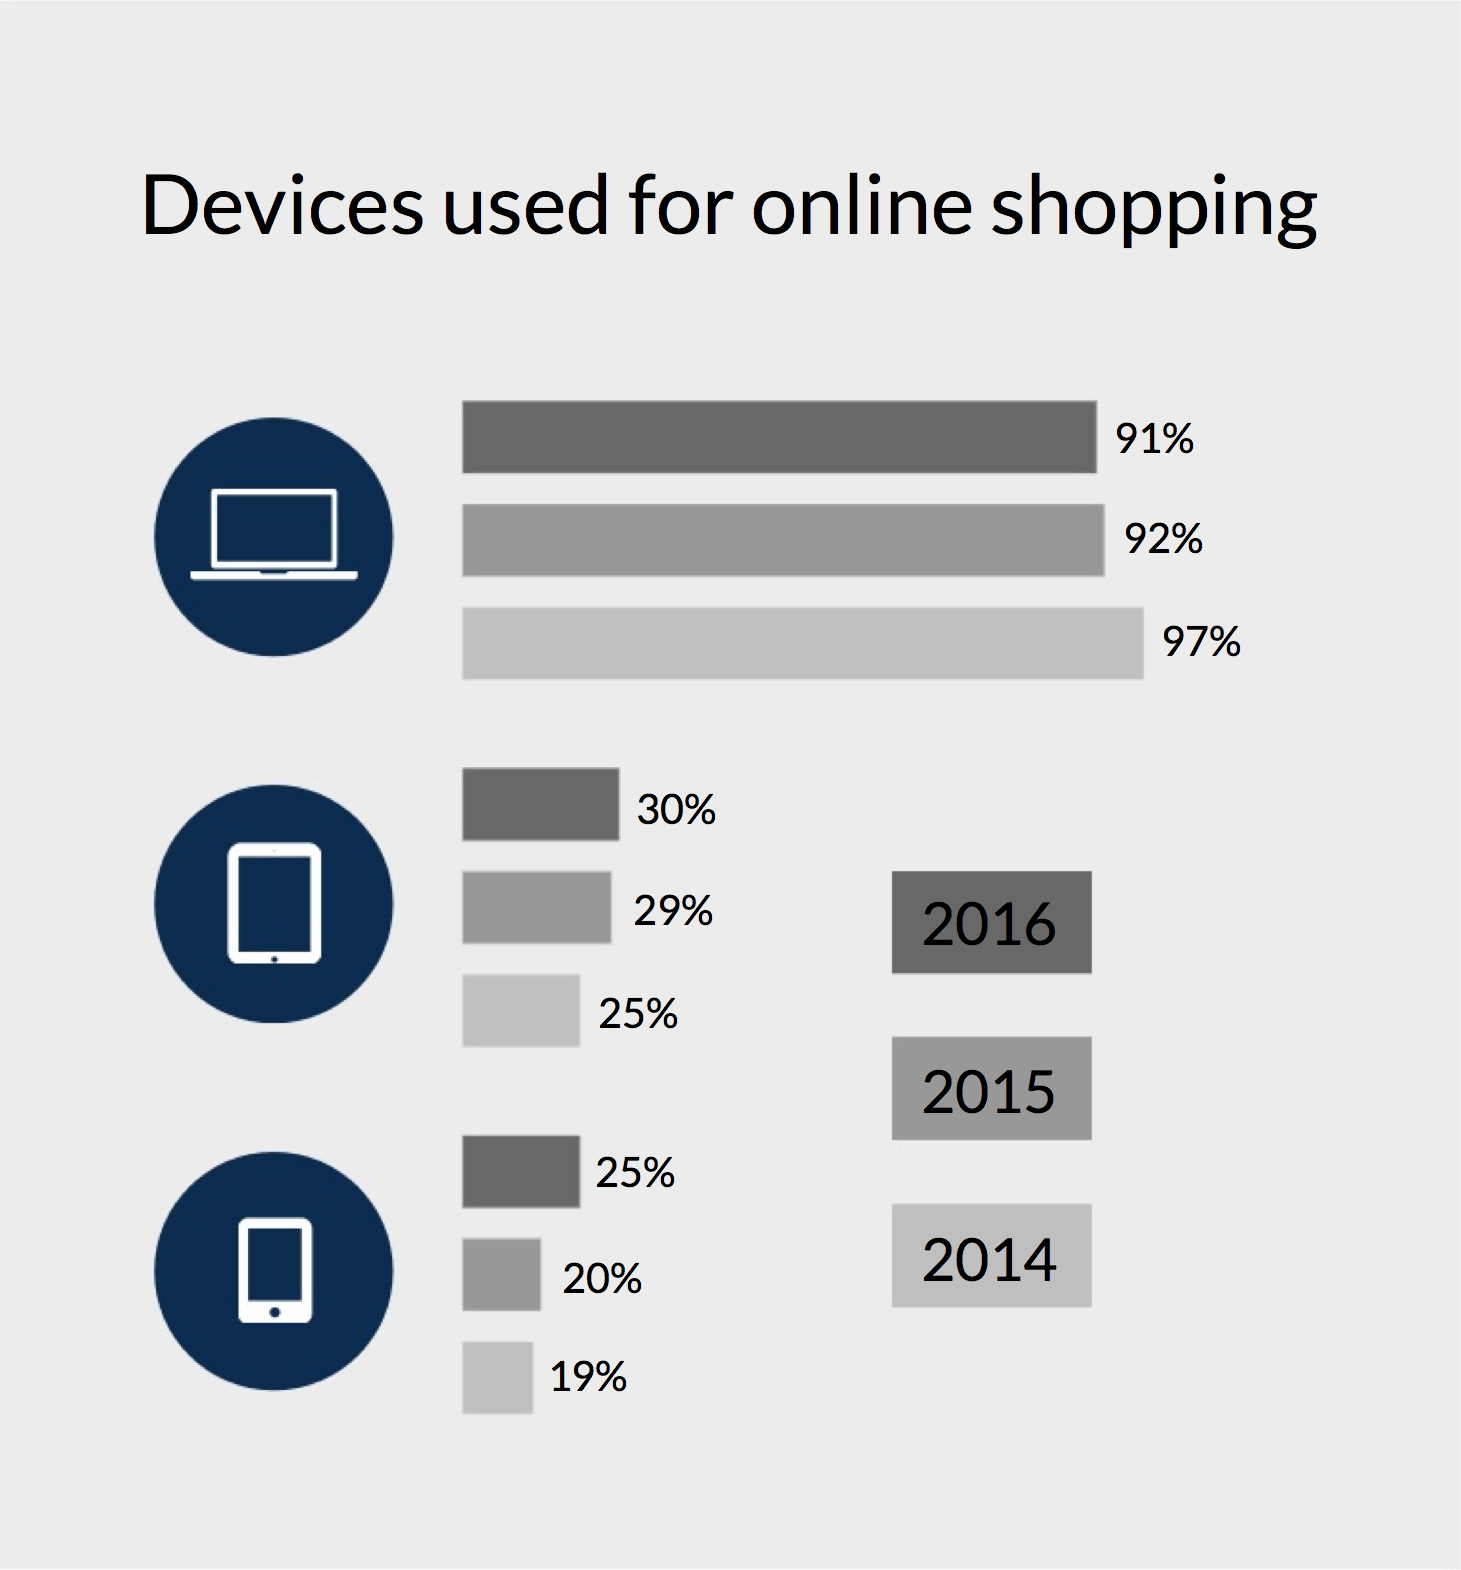 devices_used_for_online_shopping